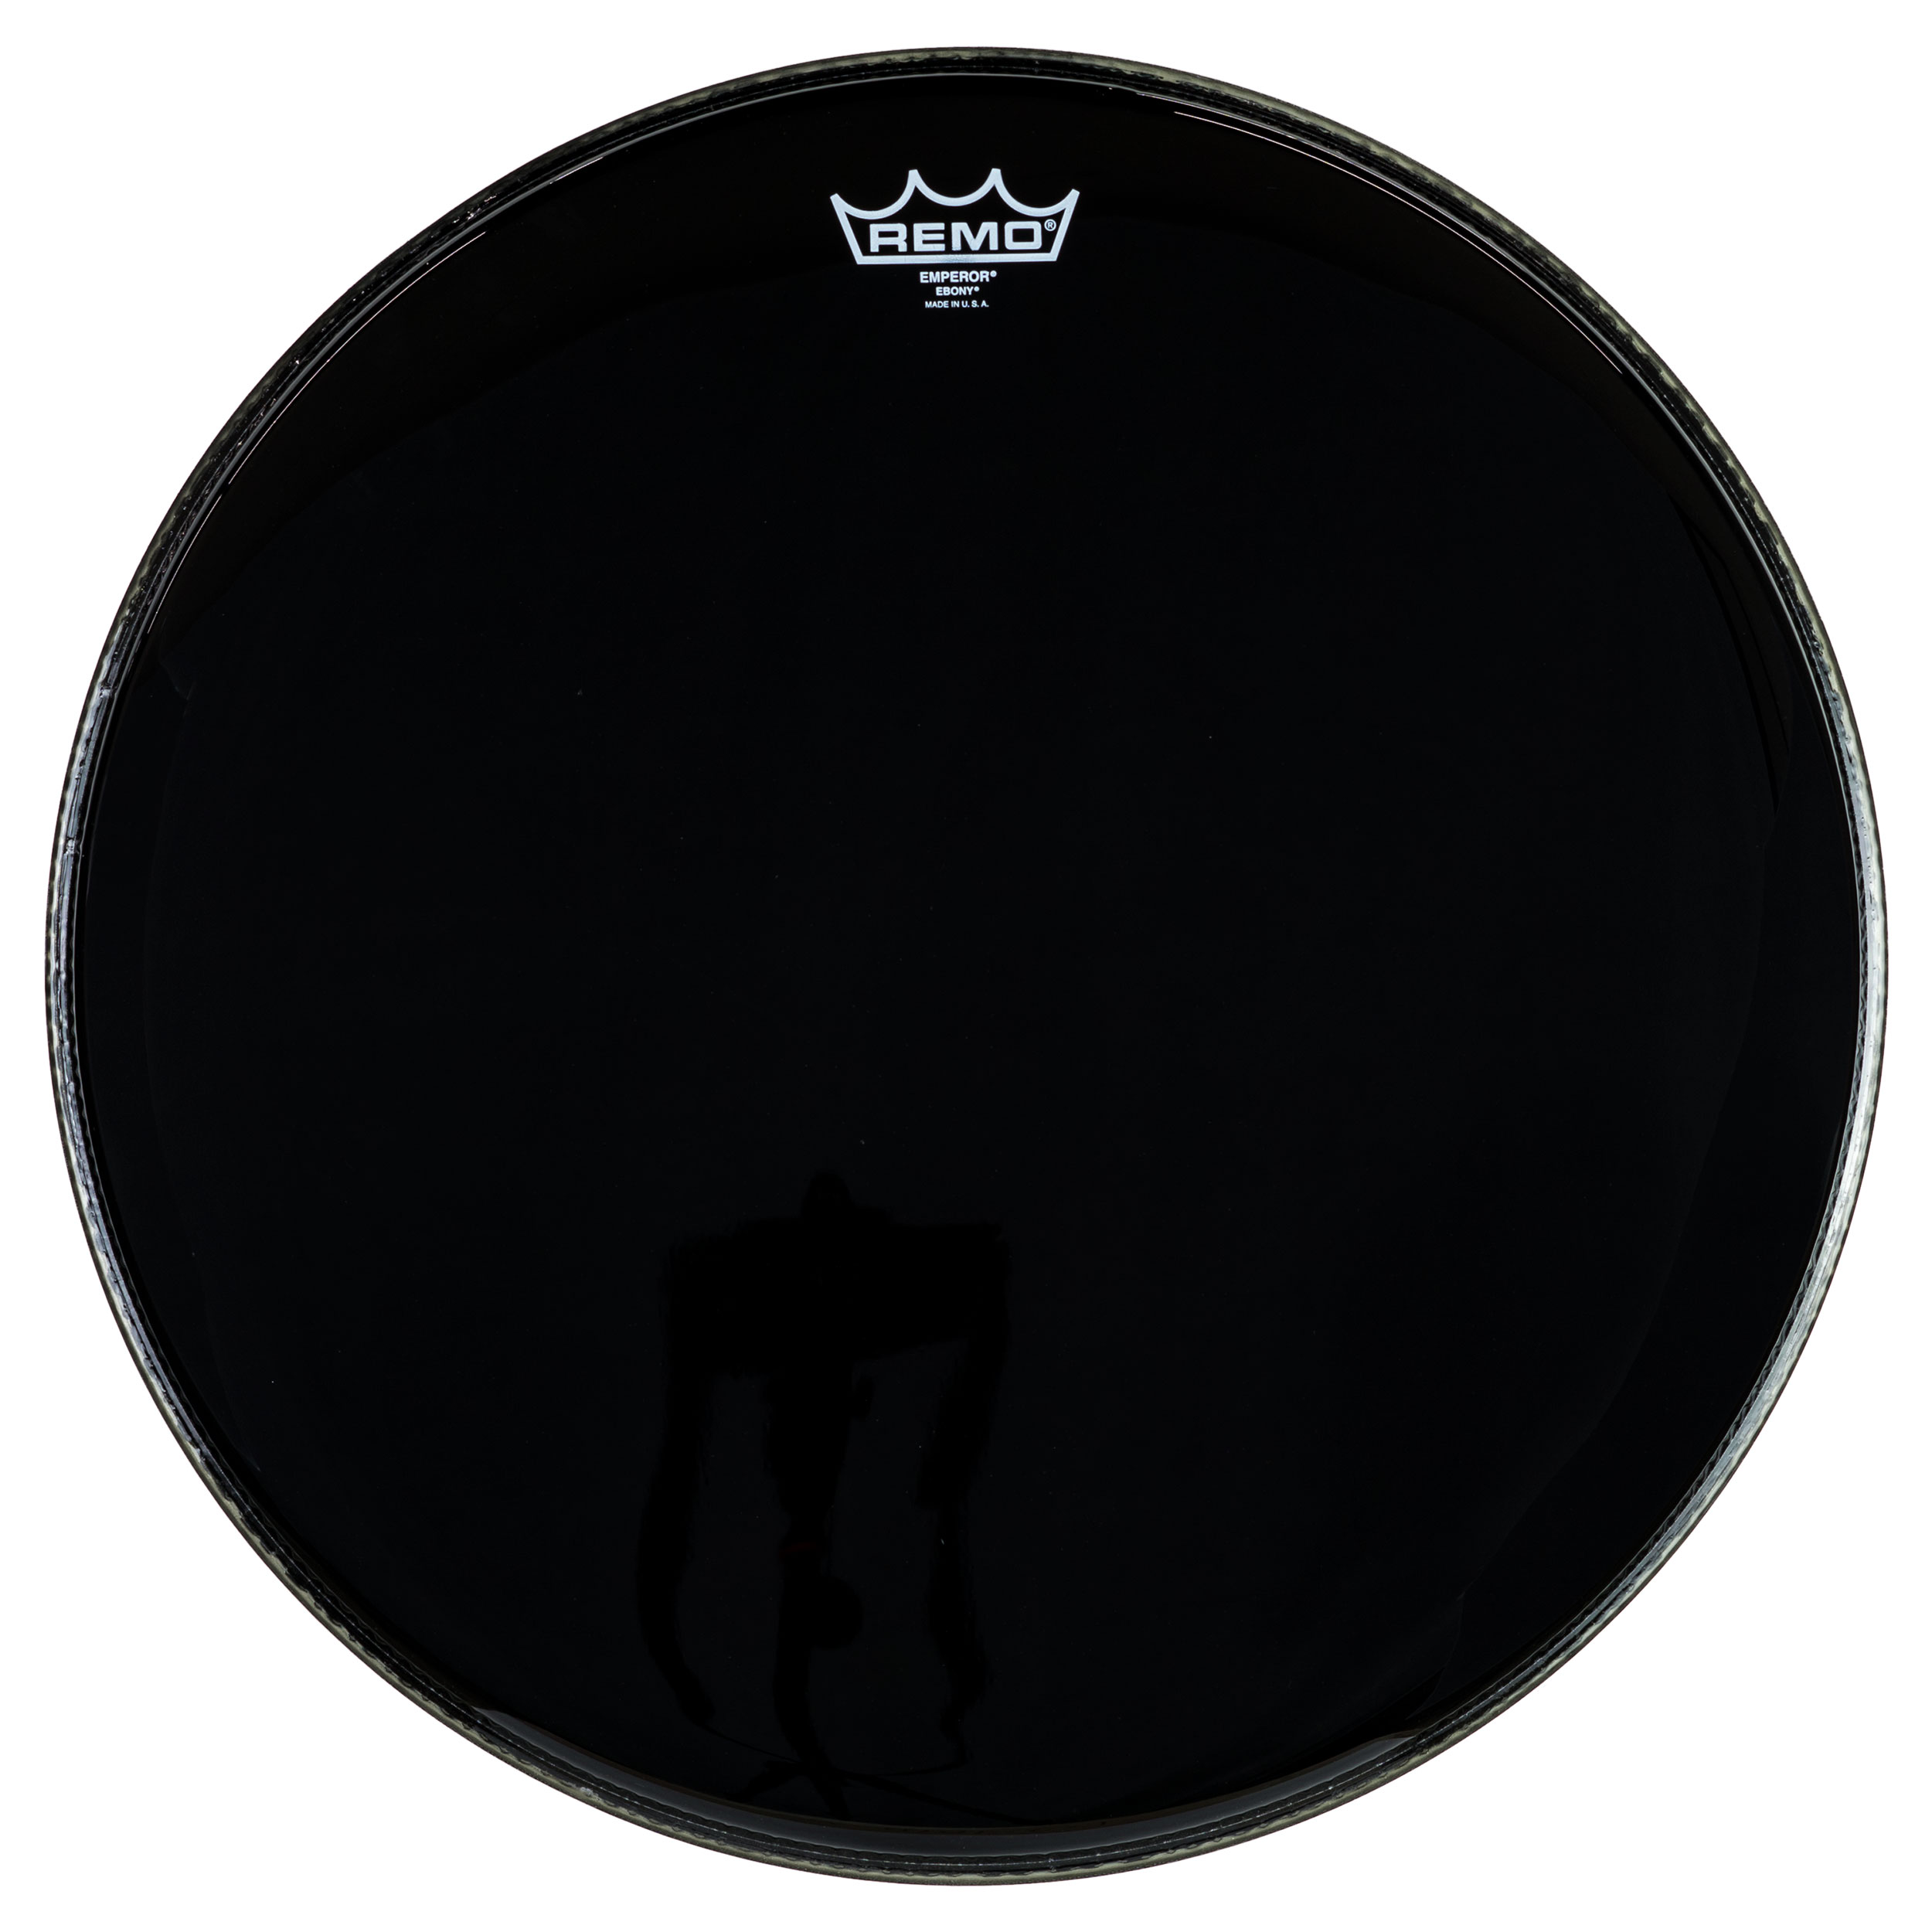 "Remo 15"" Emperor Ebony Drum Head"